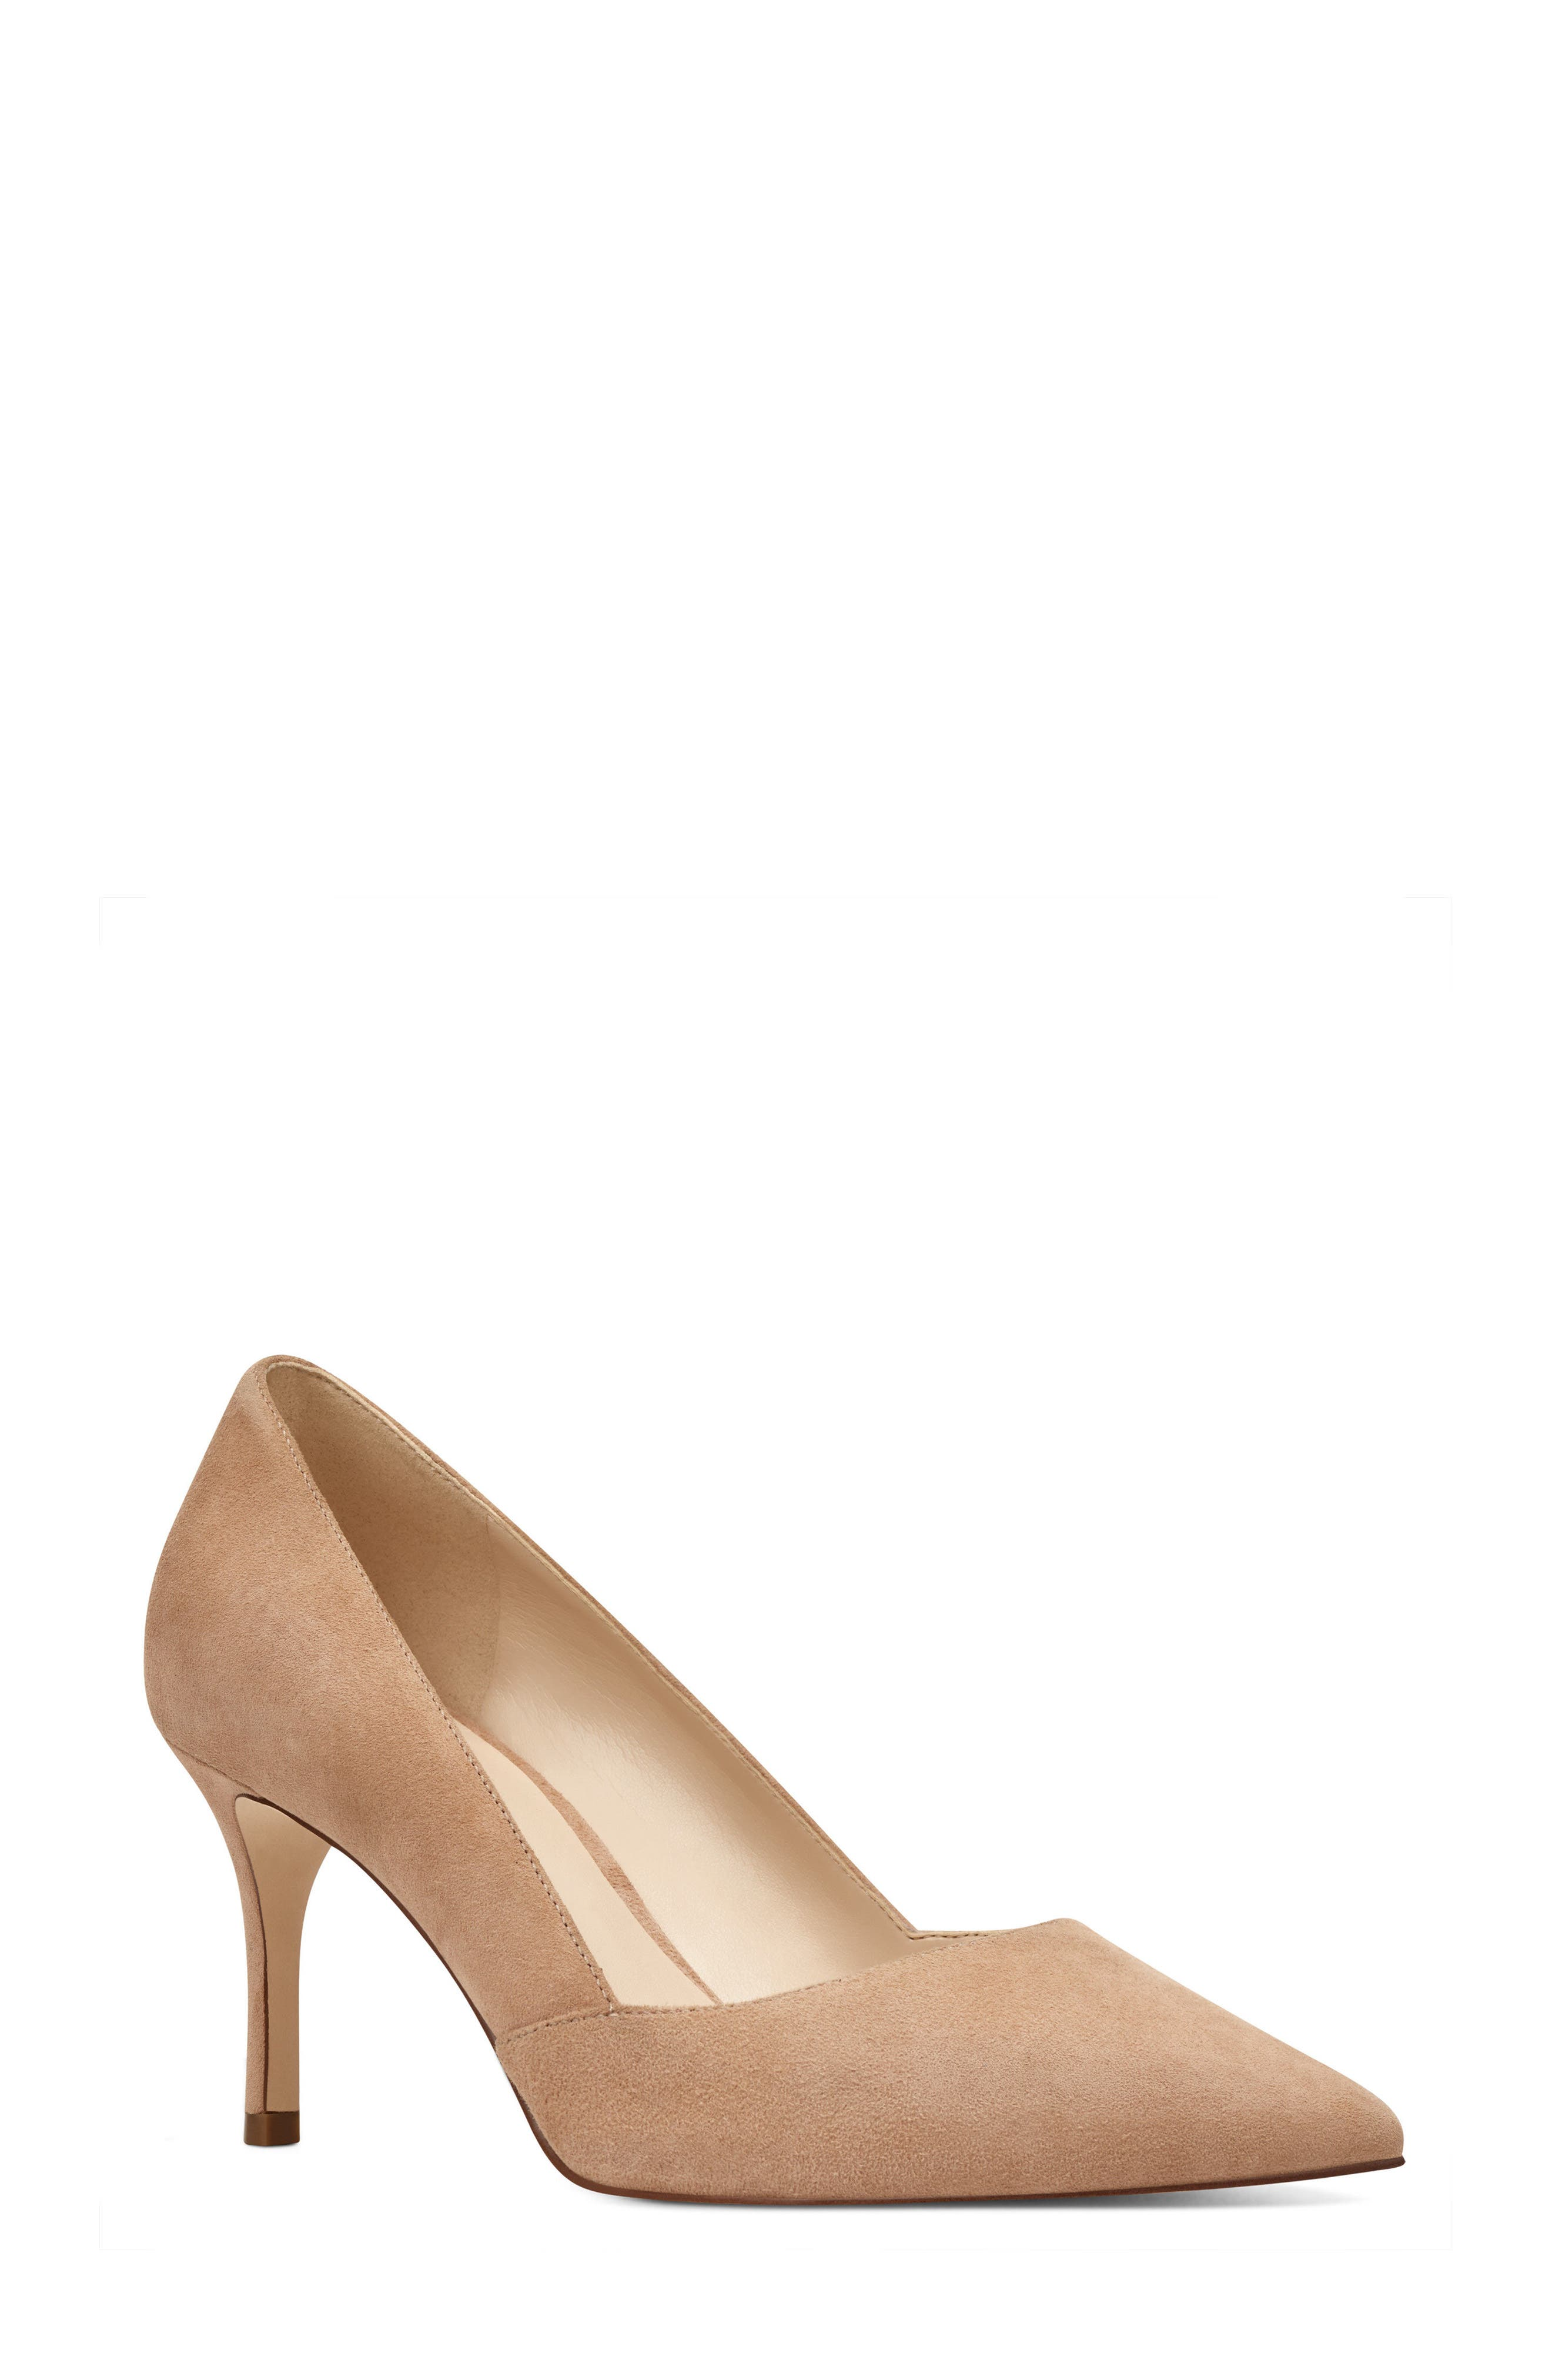 Mine Pointy Toe Pump,                         Main,                         color, Light Natural Suede